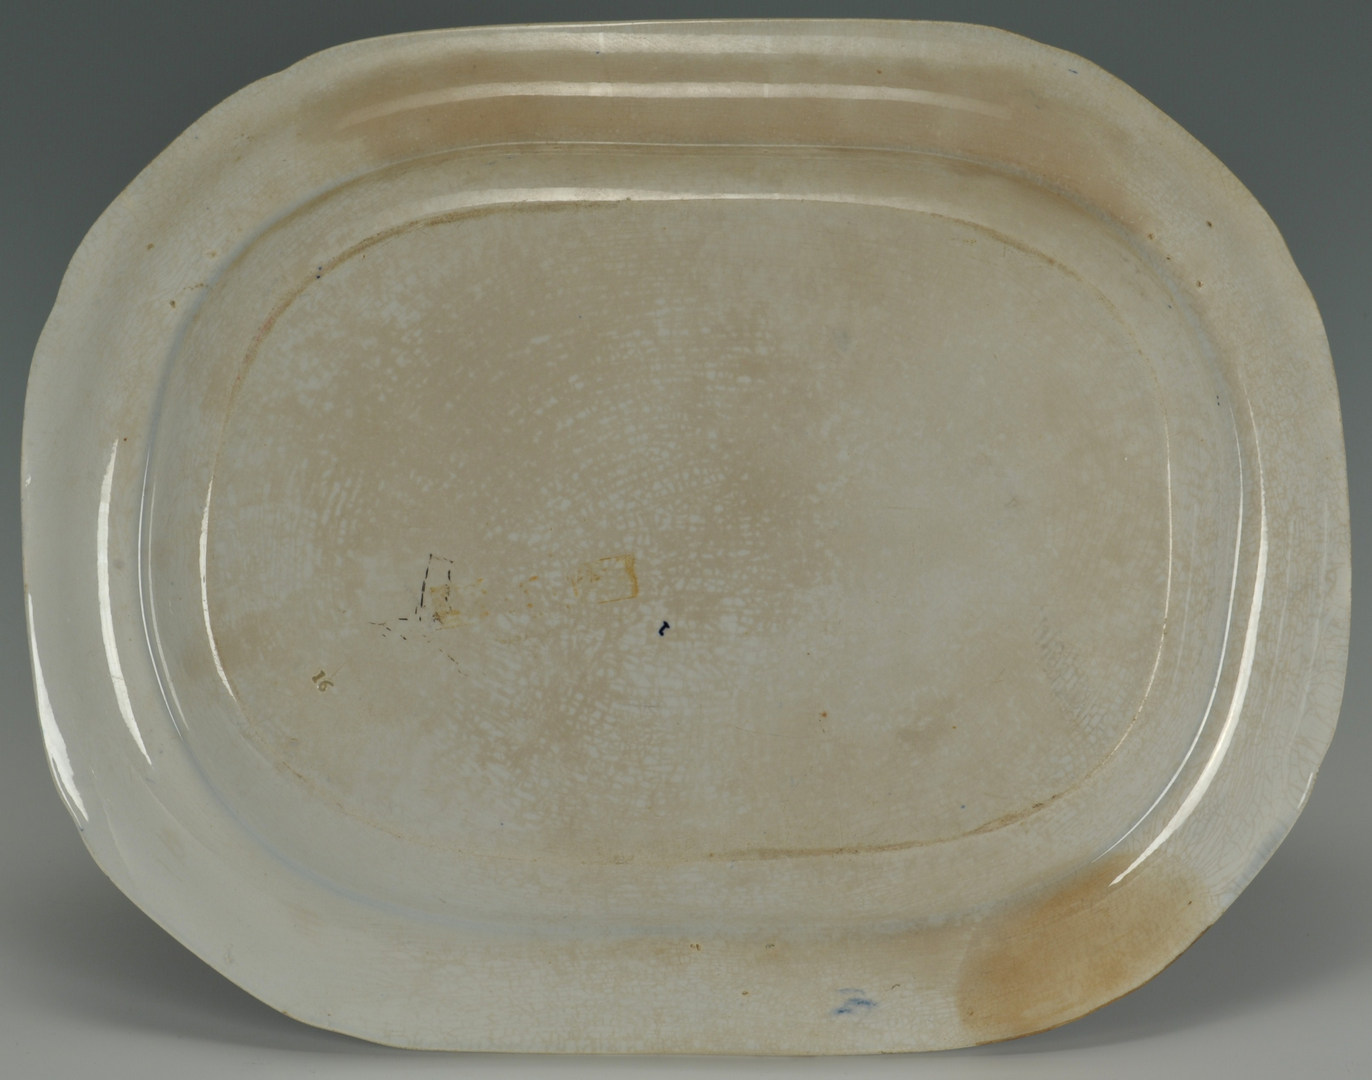 Lot 250: E. Woods and Sons Blue Staffordshire platter